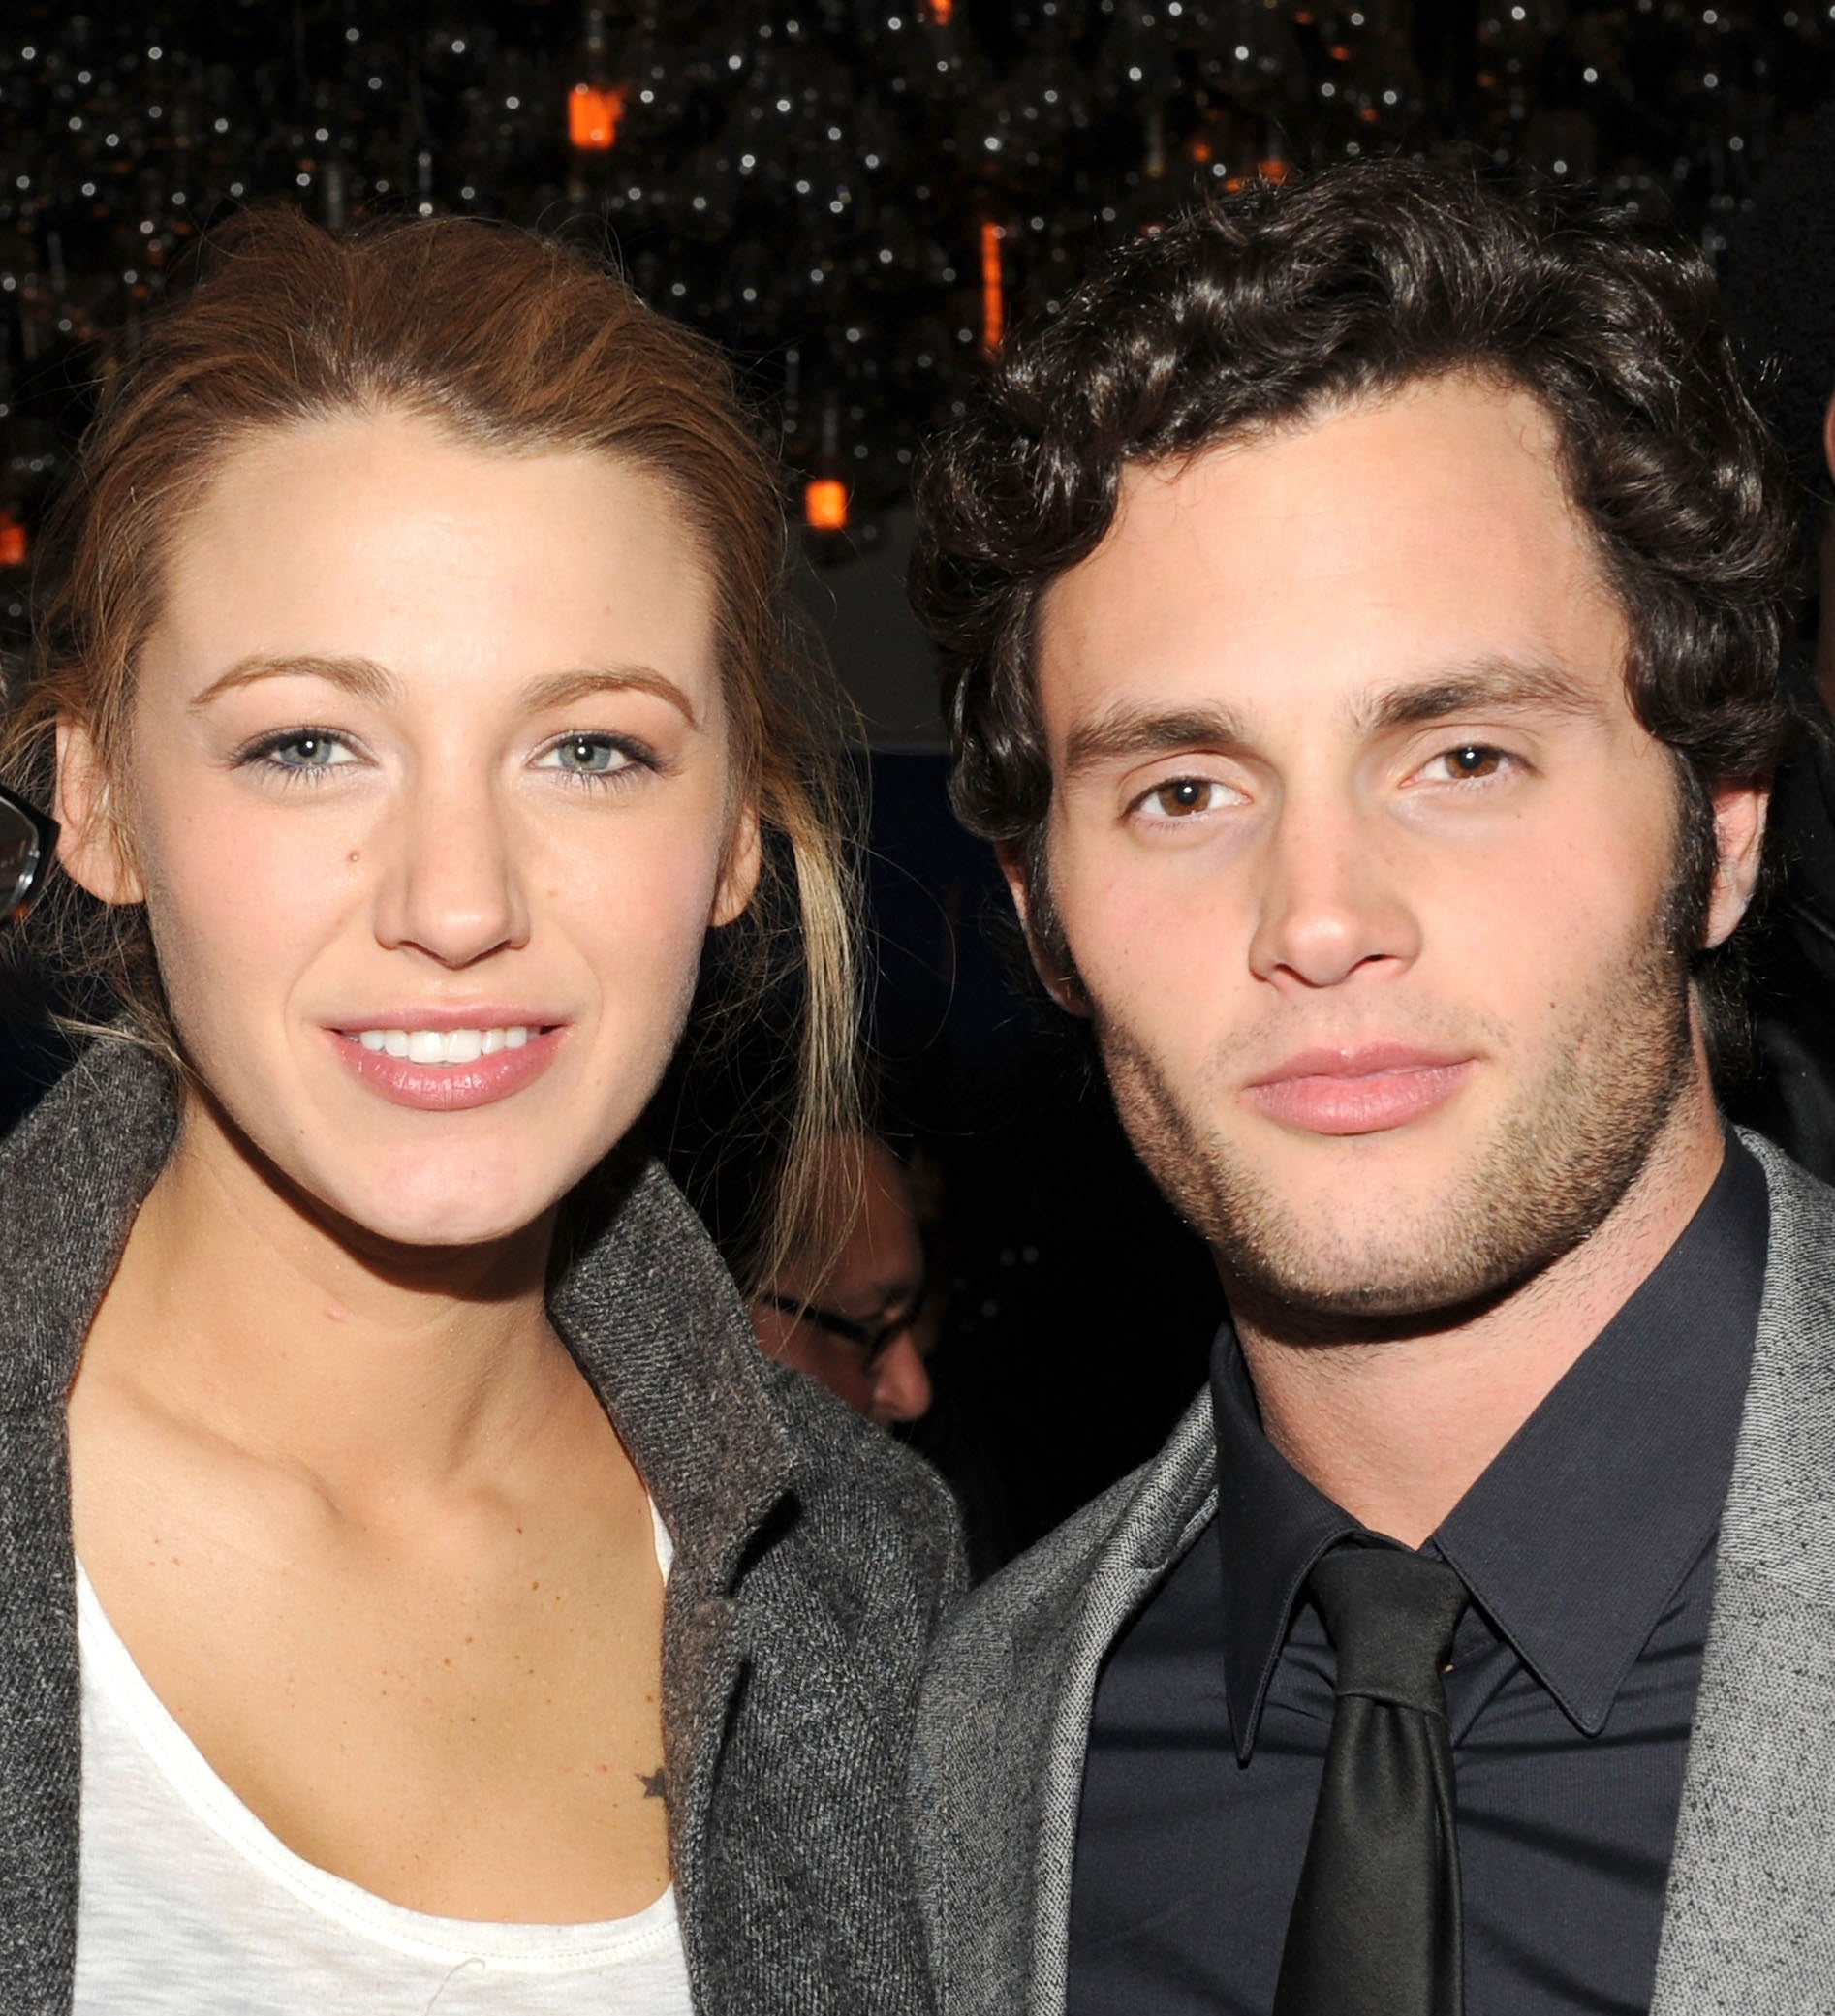 A photo of Blake Lively and Penn Badgley at event in 2010